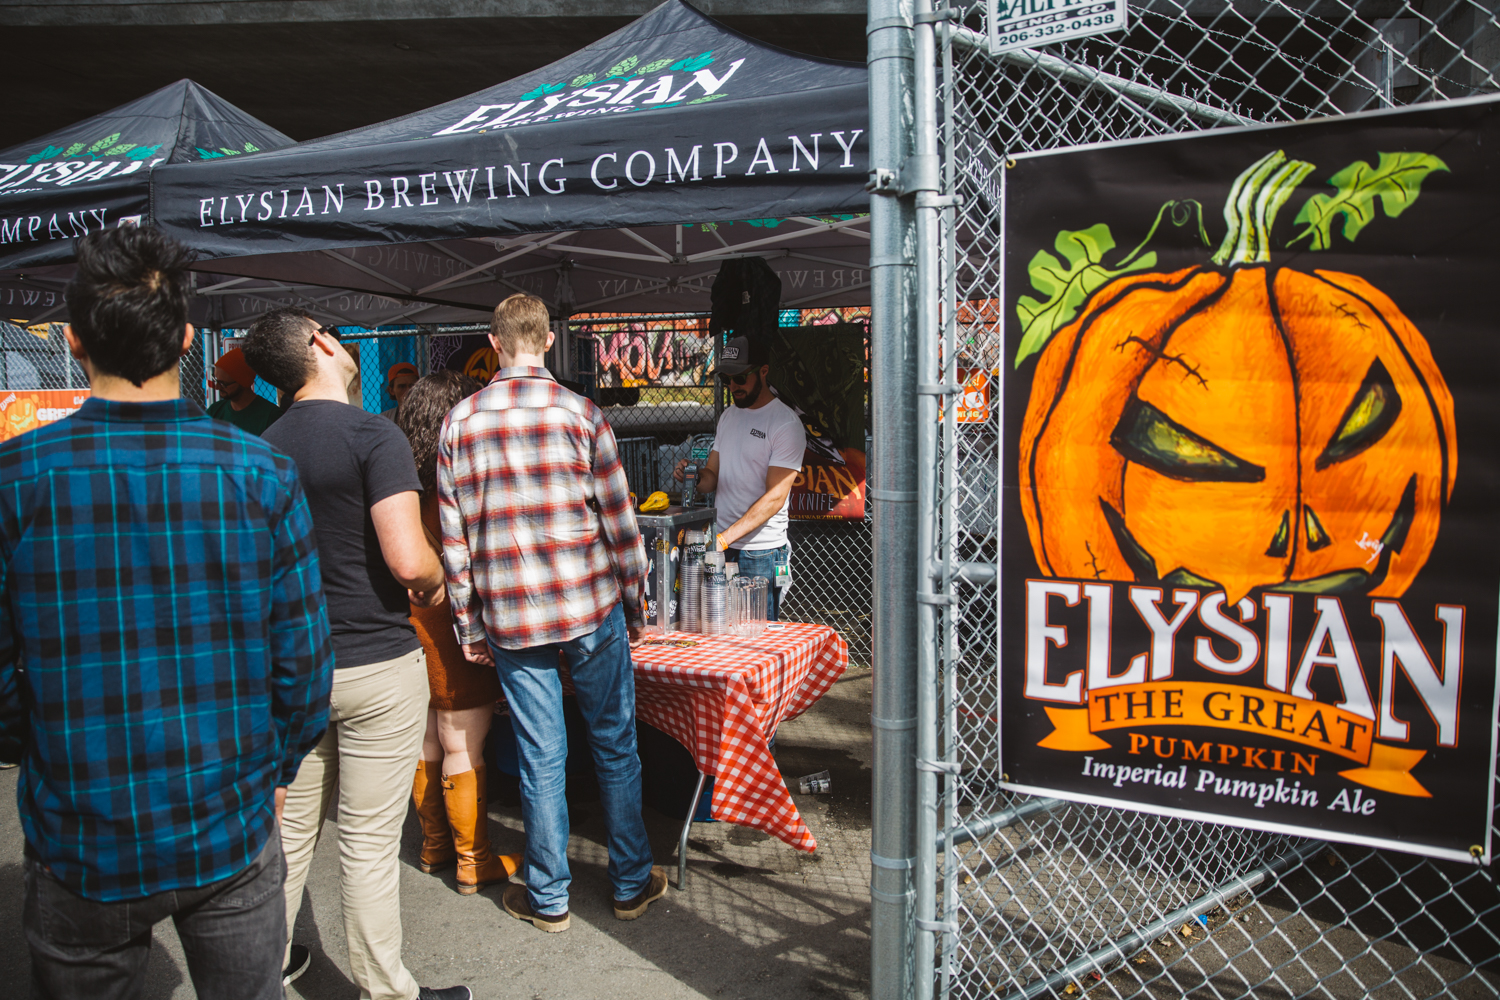 <p>Holy pumpkins! Saturday, September 29th marked the 4th annual Great Pumpkin Weigh-Off at Elysian Brewery's Georgetown location! The GWPO is an event to celebrate local growers in the Northwest. The giant pumpkins are hauled in, judged, weighed, and prize money is awarded to the biggest pumpkins on the block (Image: Ryan McBoyle / Seattle Refined).</p>